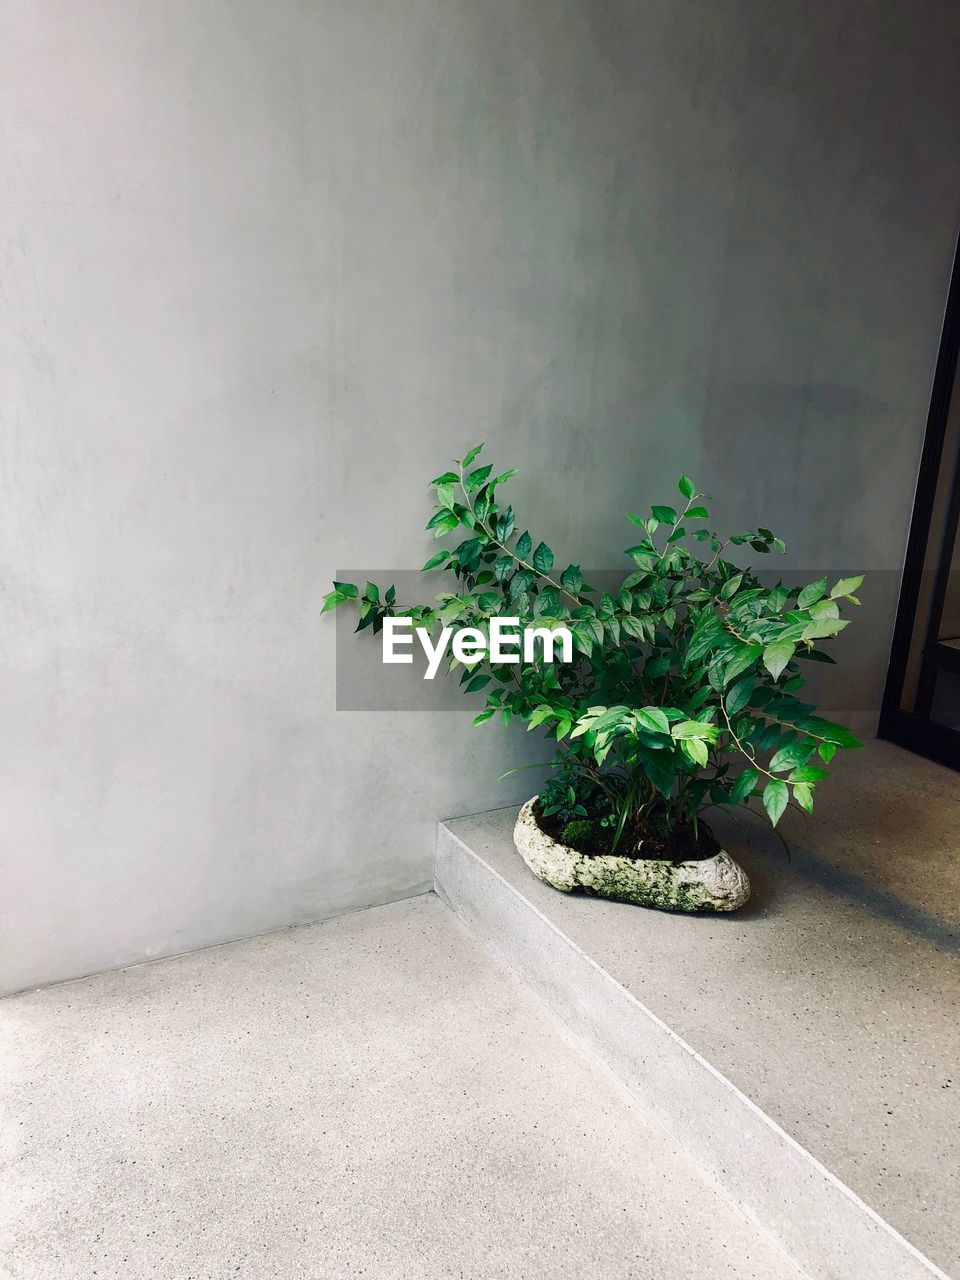 plant, growth, wall - building feature, no people, nature, green color, plant part, leaf, potted plant, day, indoors, built structure, architecture, beauty in nature, wall, freshness, white color, vulnerability, houseplant